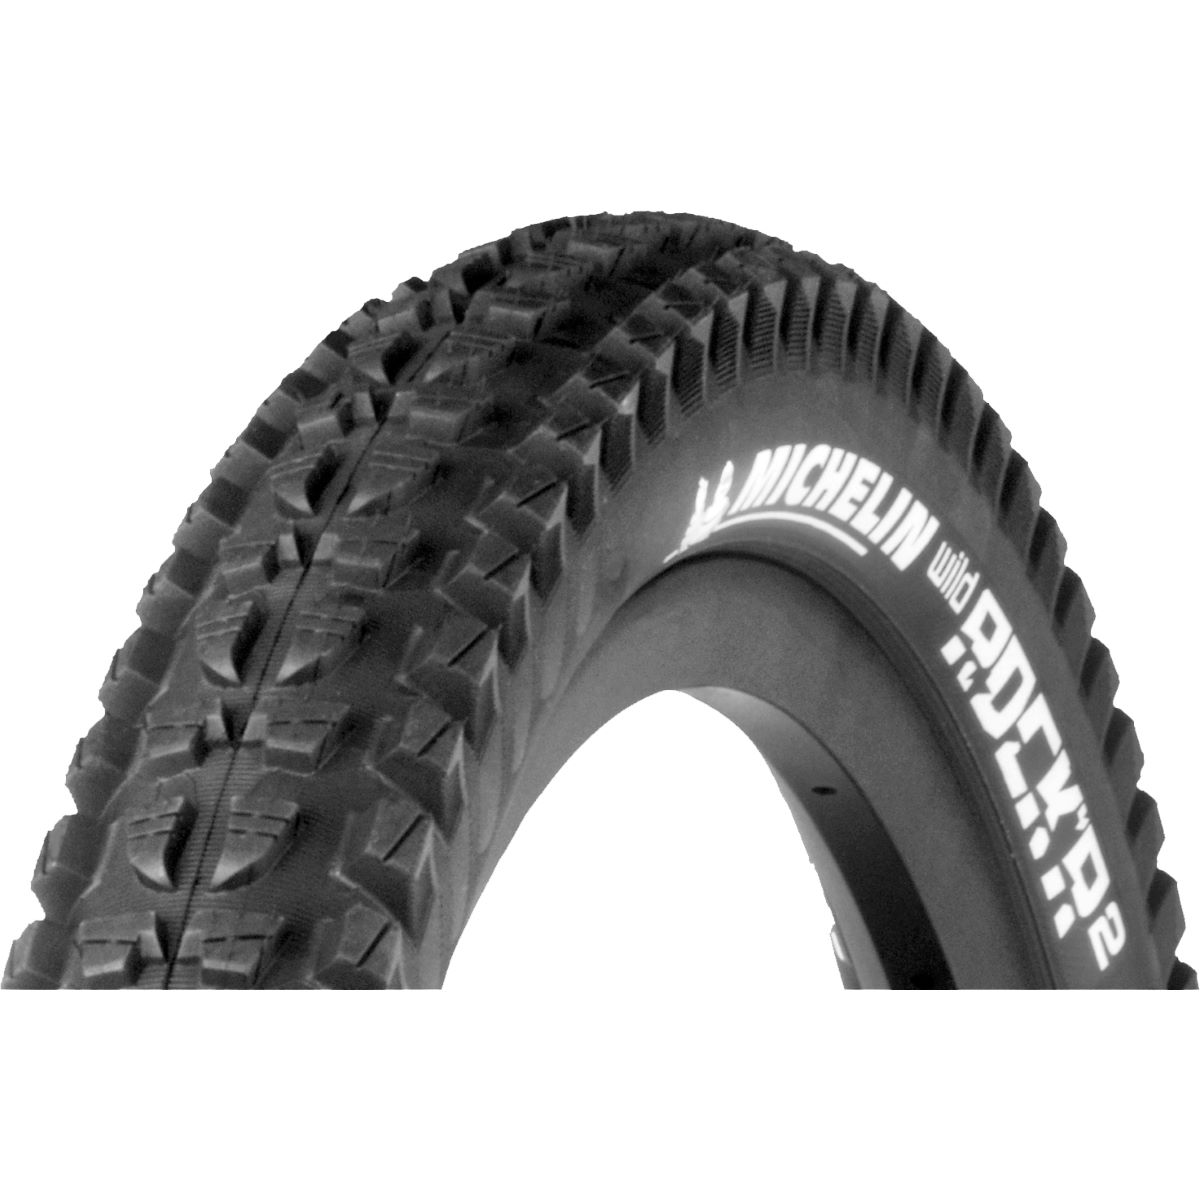 Pneu Michelin Wild Rock'r2 Advanced Reinforced Magi-X 29 pouces - 29 x 2.35 Noir Pneus VTT